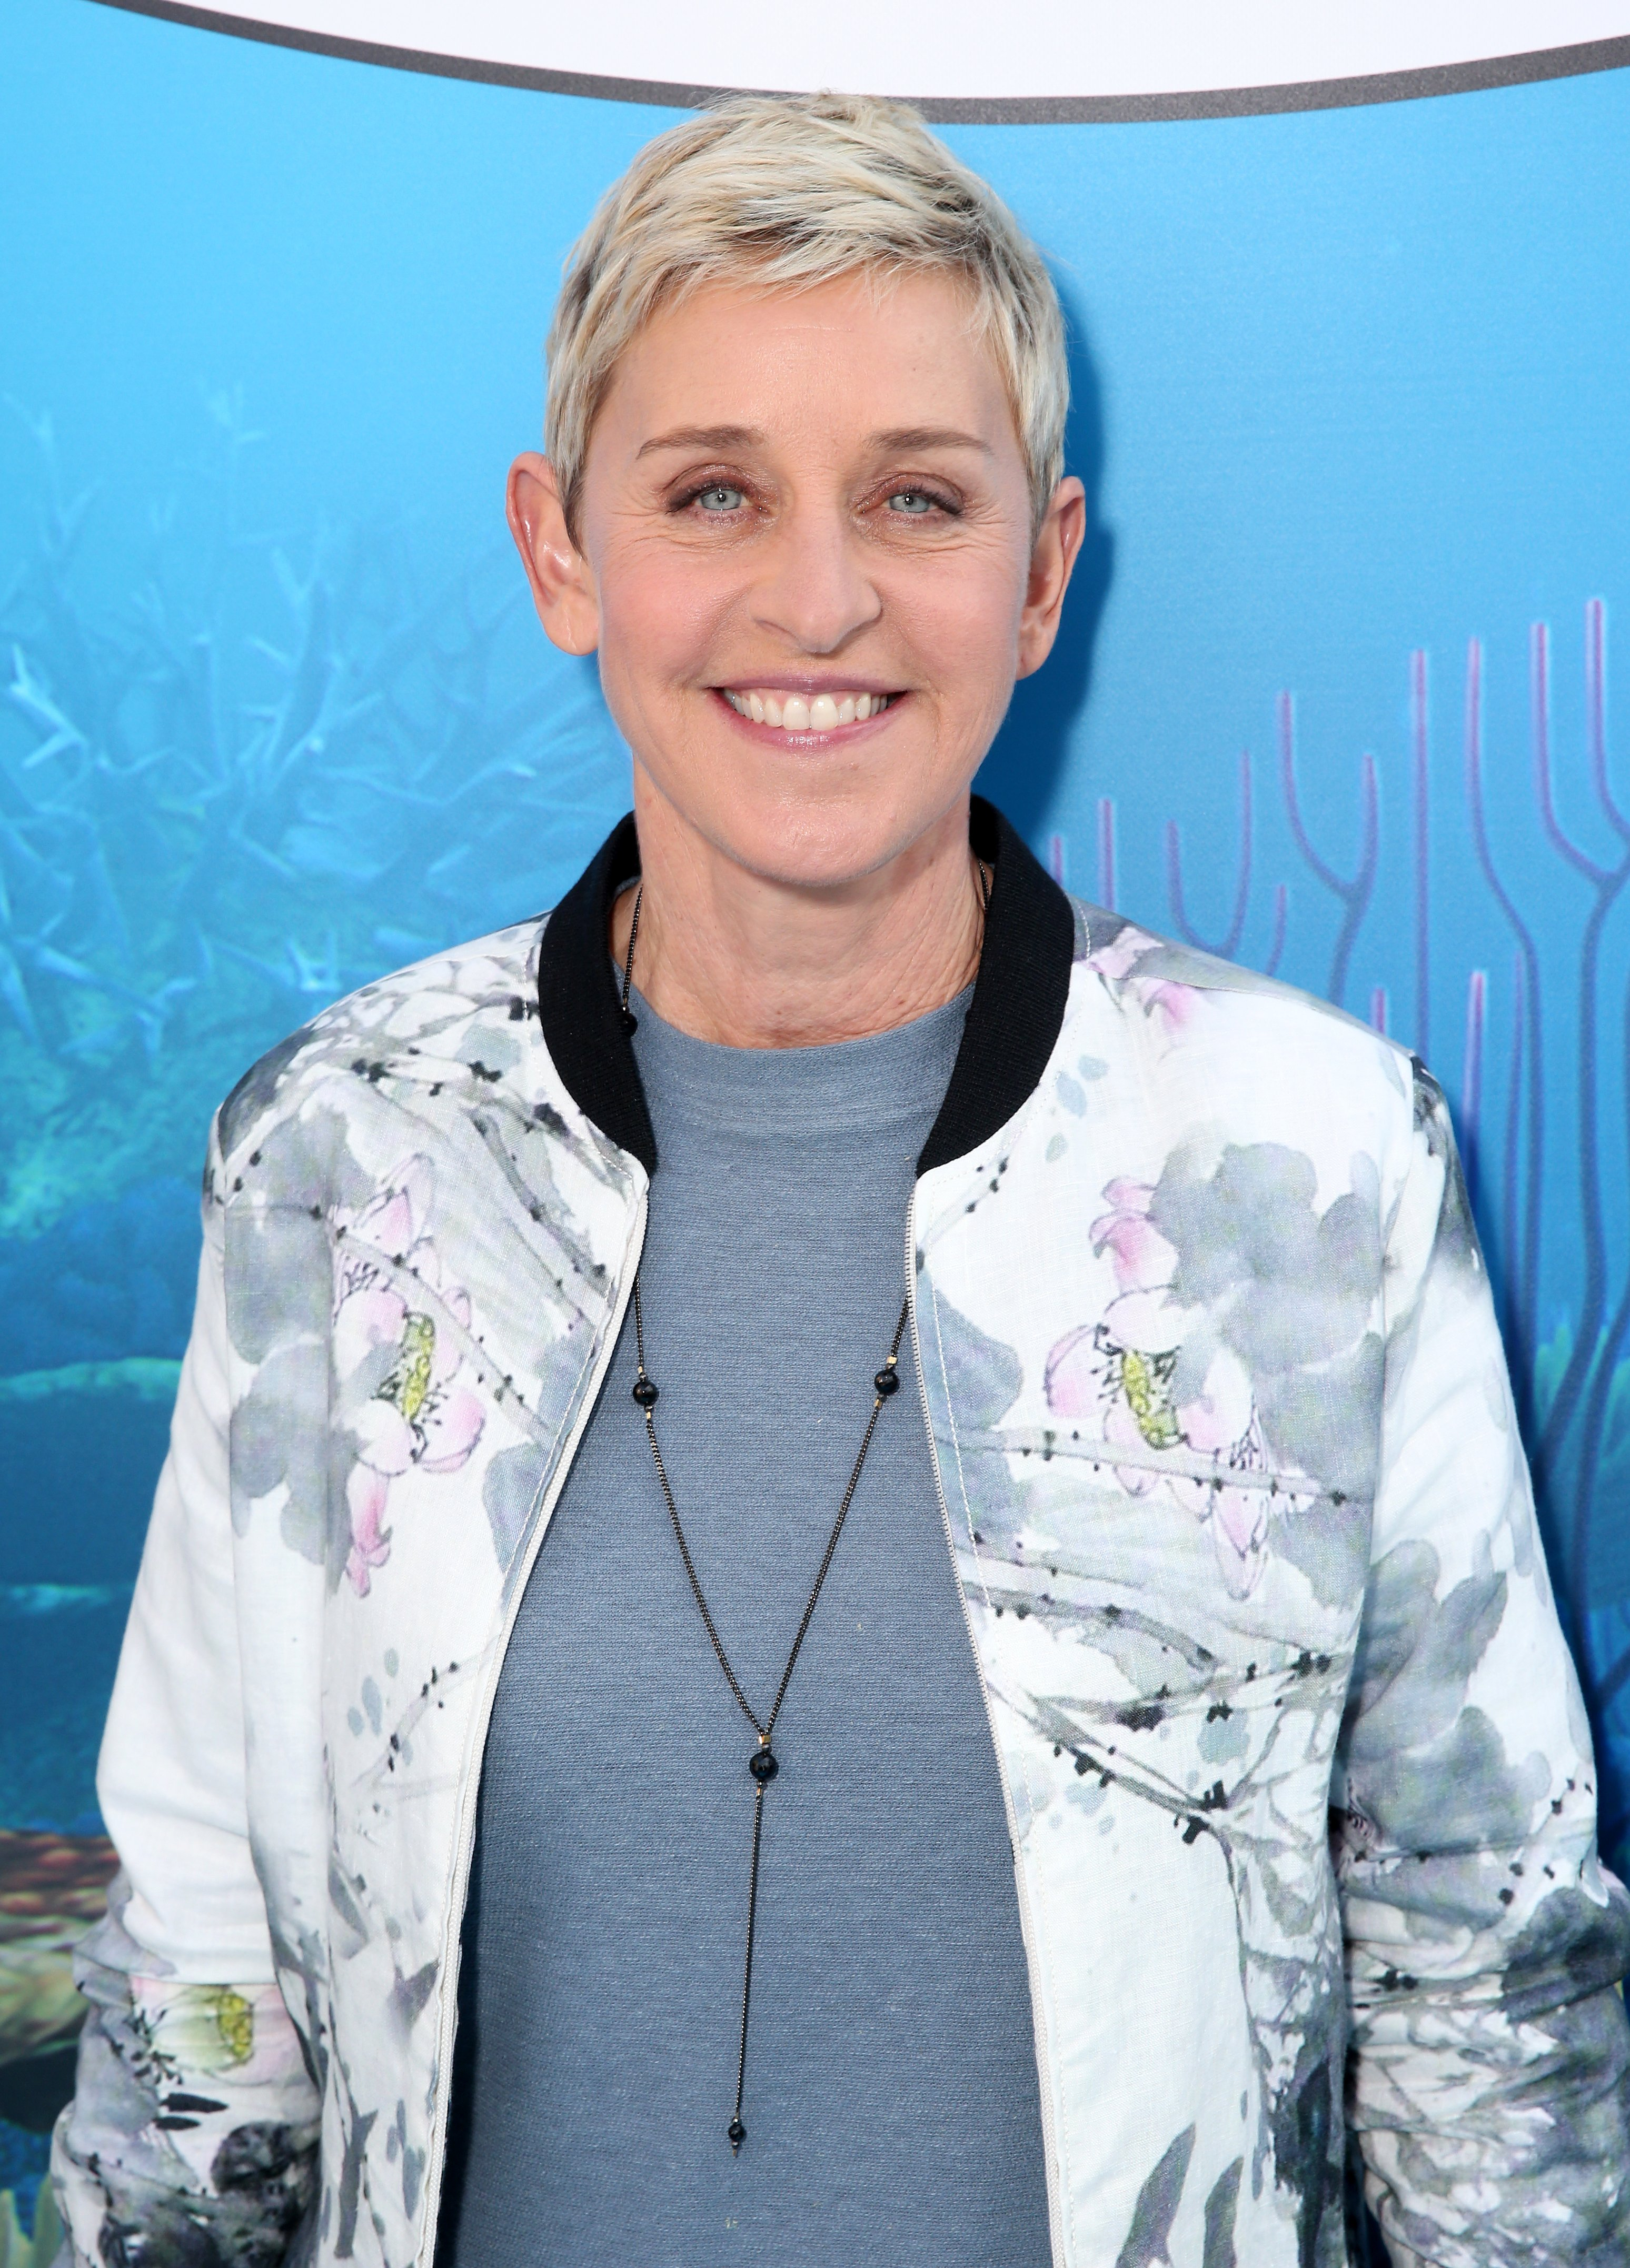 Ellen DeGeneres attending the world premiere of Disney-Pixar's 'Finding Dory' on June 8, 2016 in Hollywood, California. | Source: Getty Images